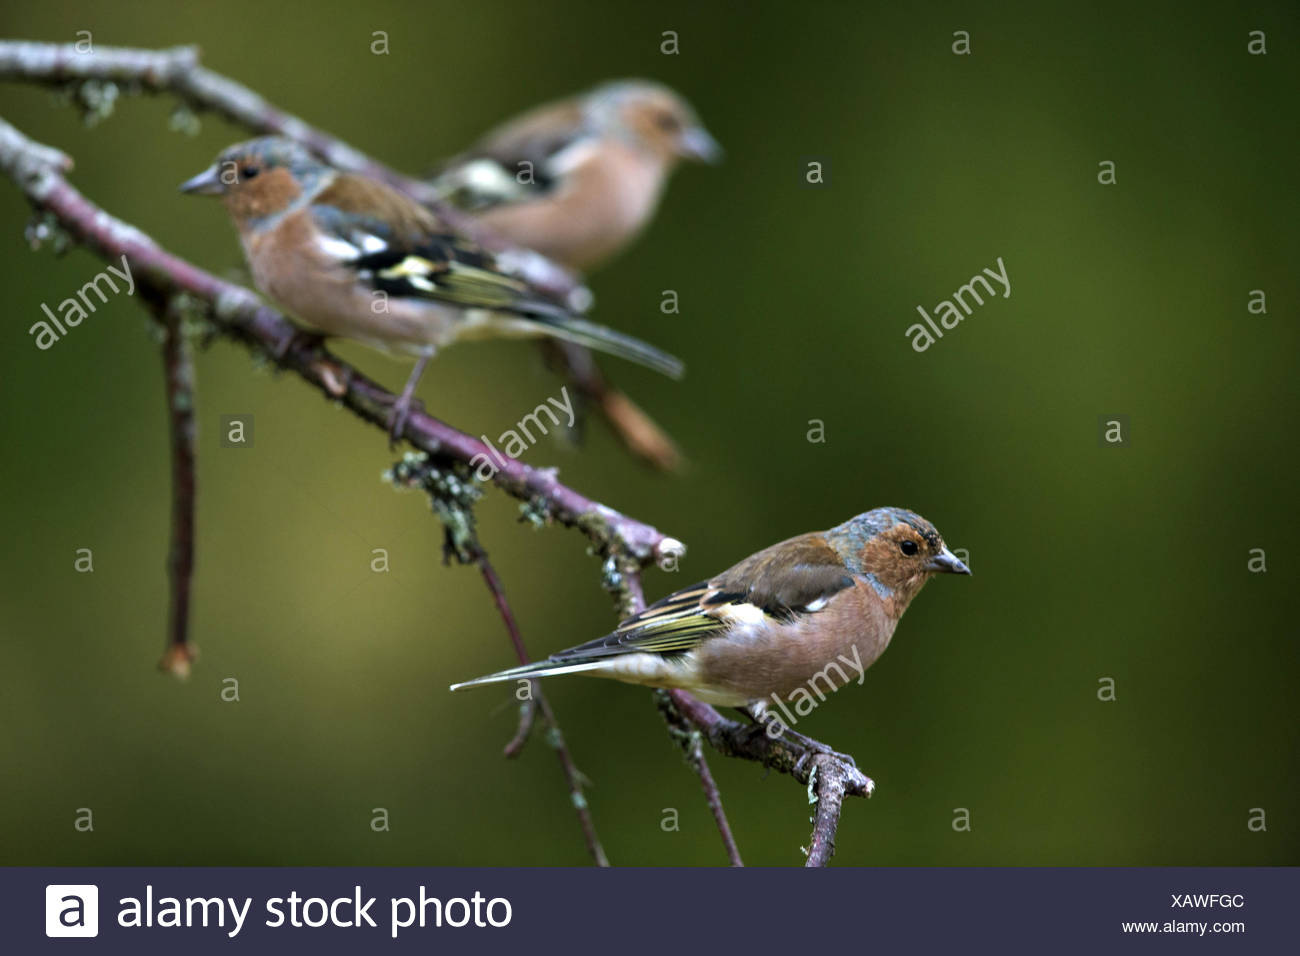 chaffinch (Fringilla coelebs), three chaffinches sitting on a twig, Sweden - Stock Image